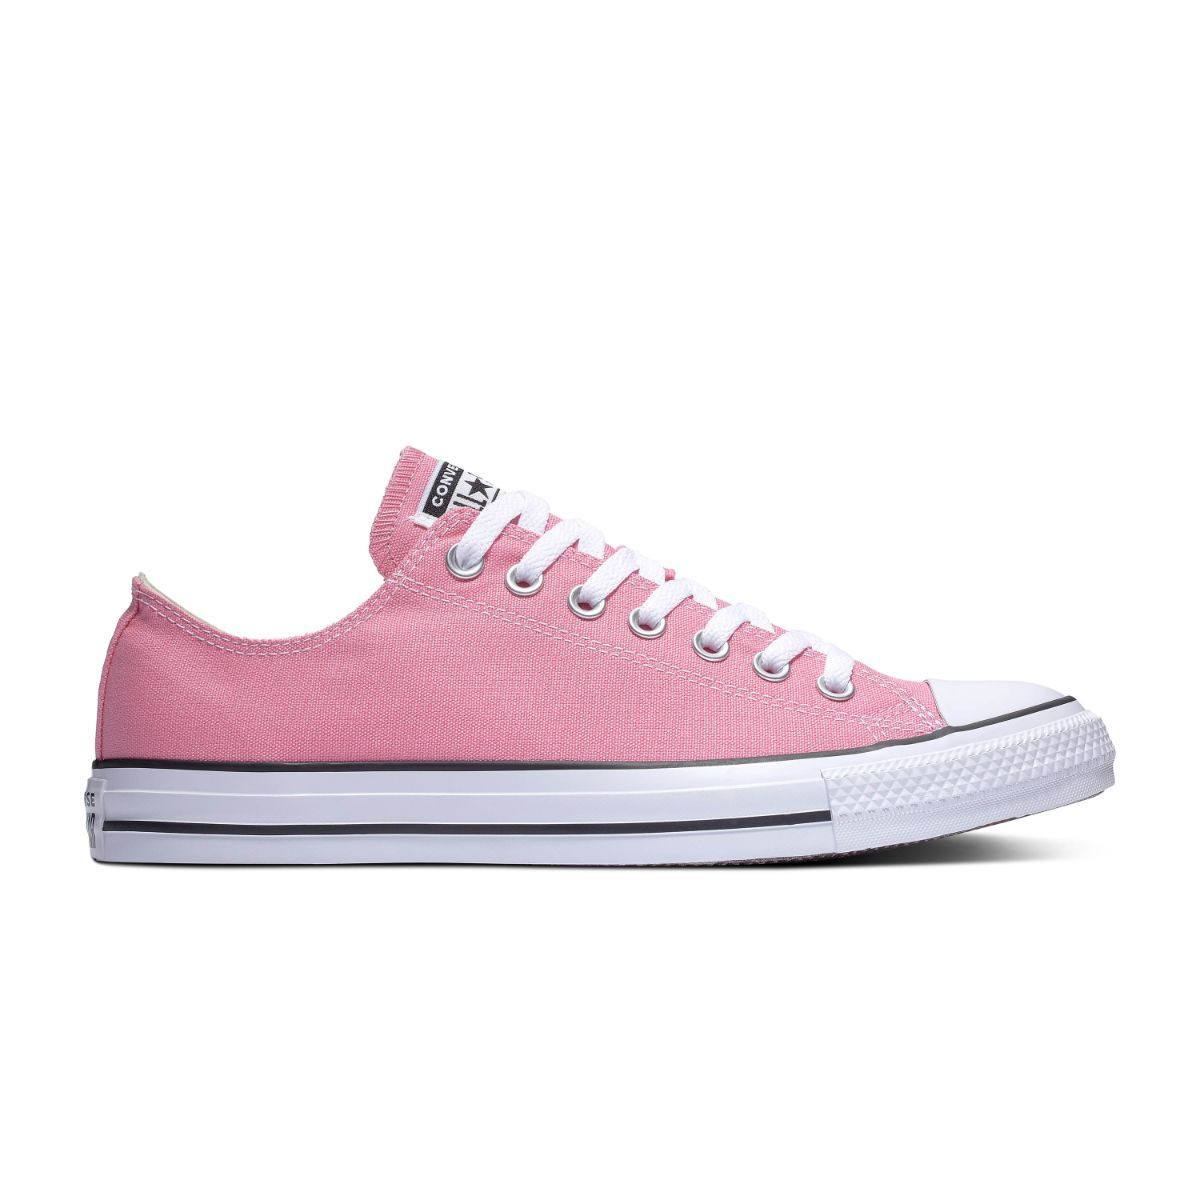 Chuck Taylor All Star Pink Low Top